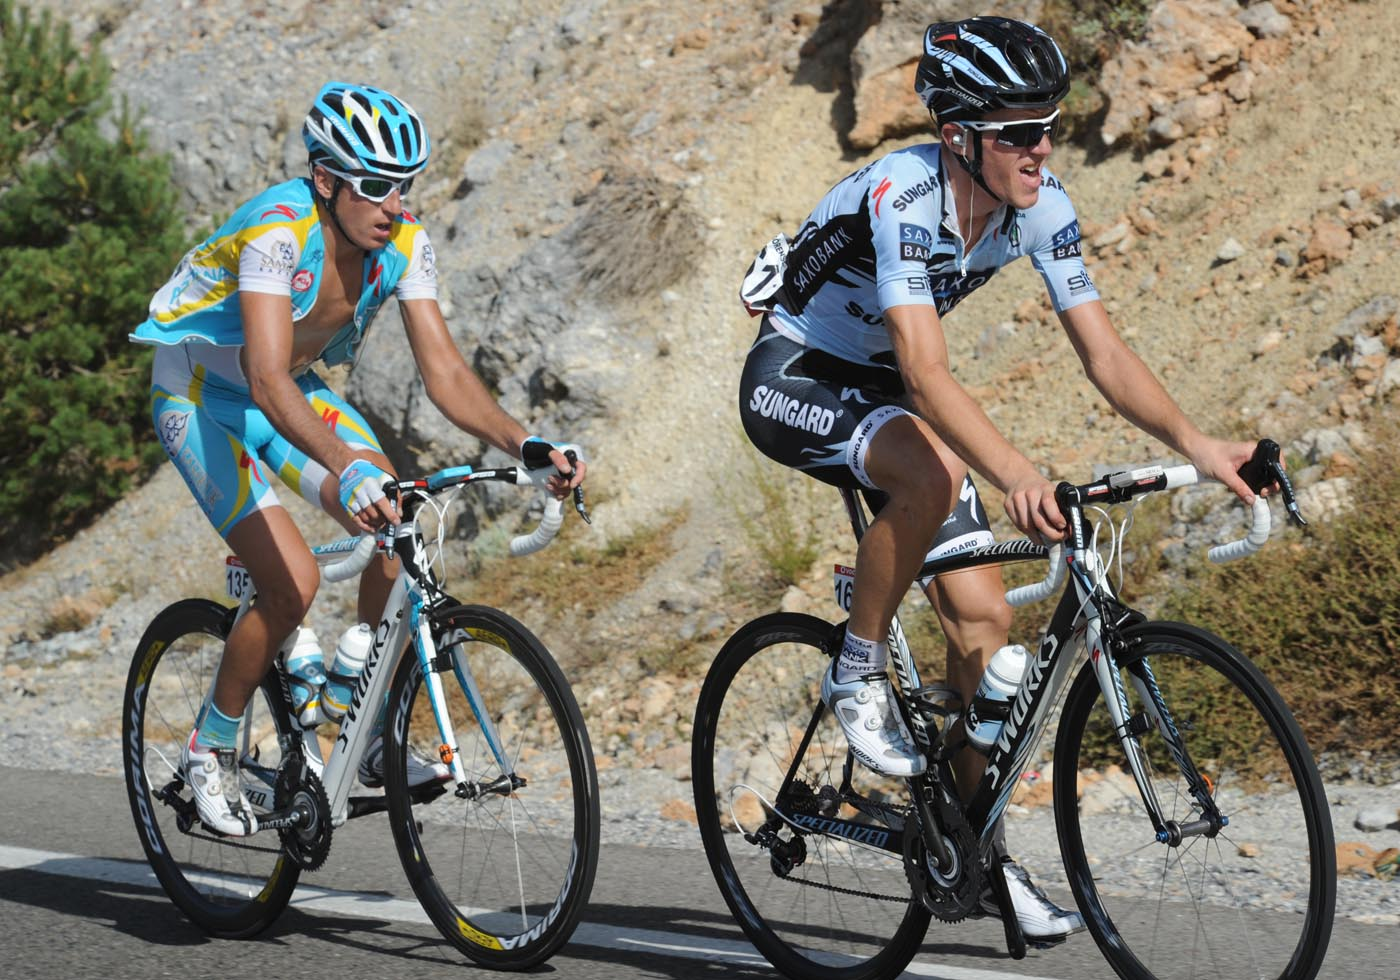 Chris Anker Sorensen escapes, Vuelta a Espana 2011, stage four